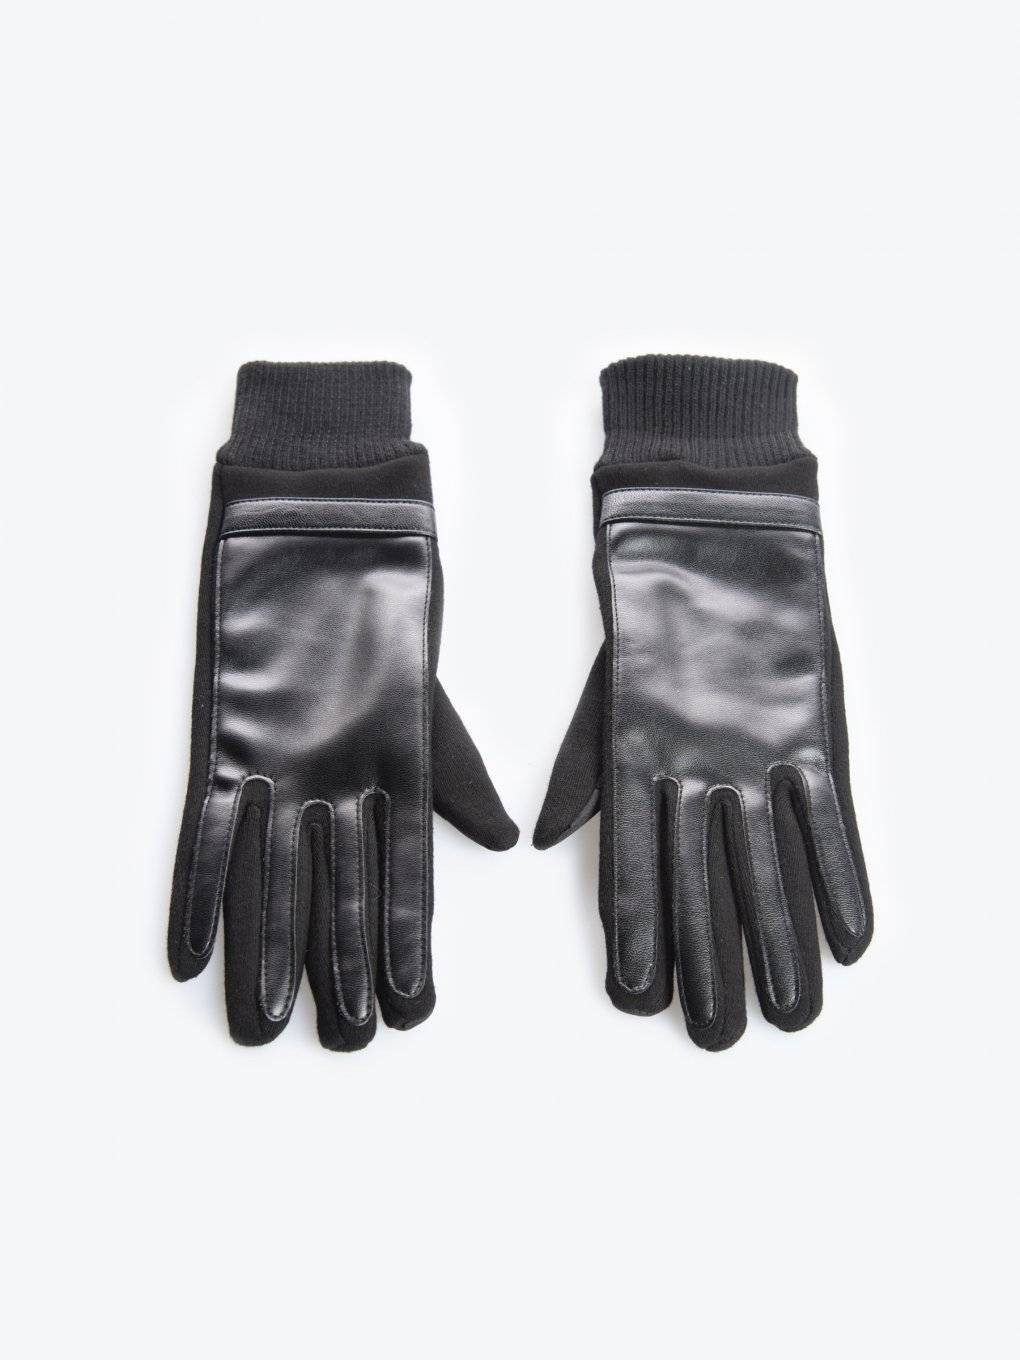 Combined touchscreen gloves